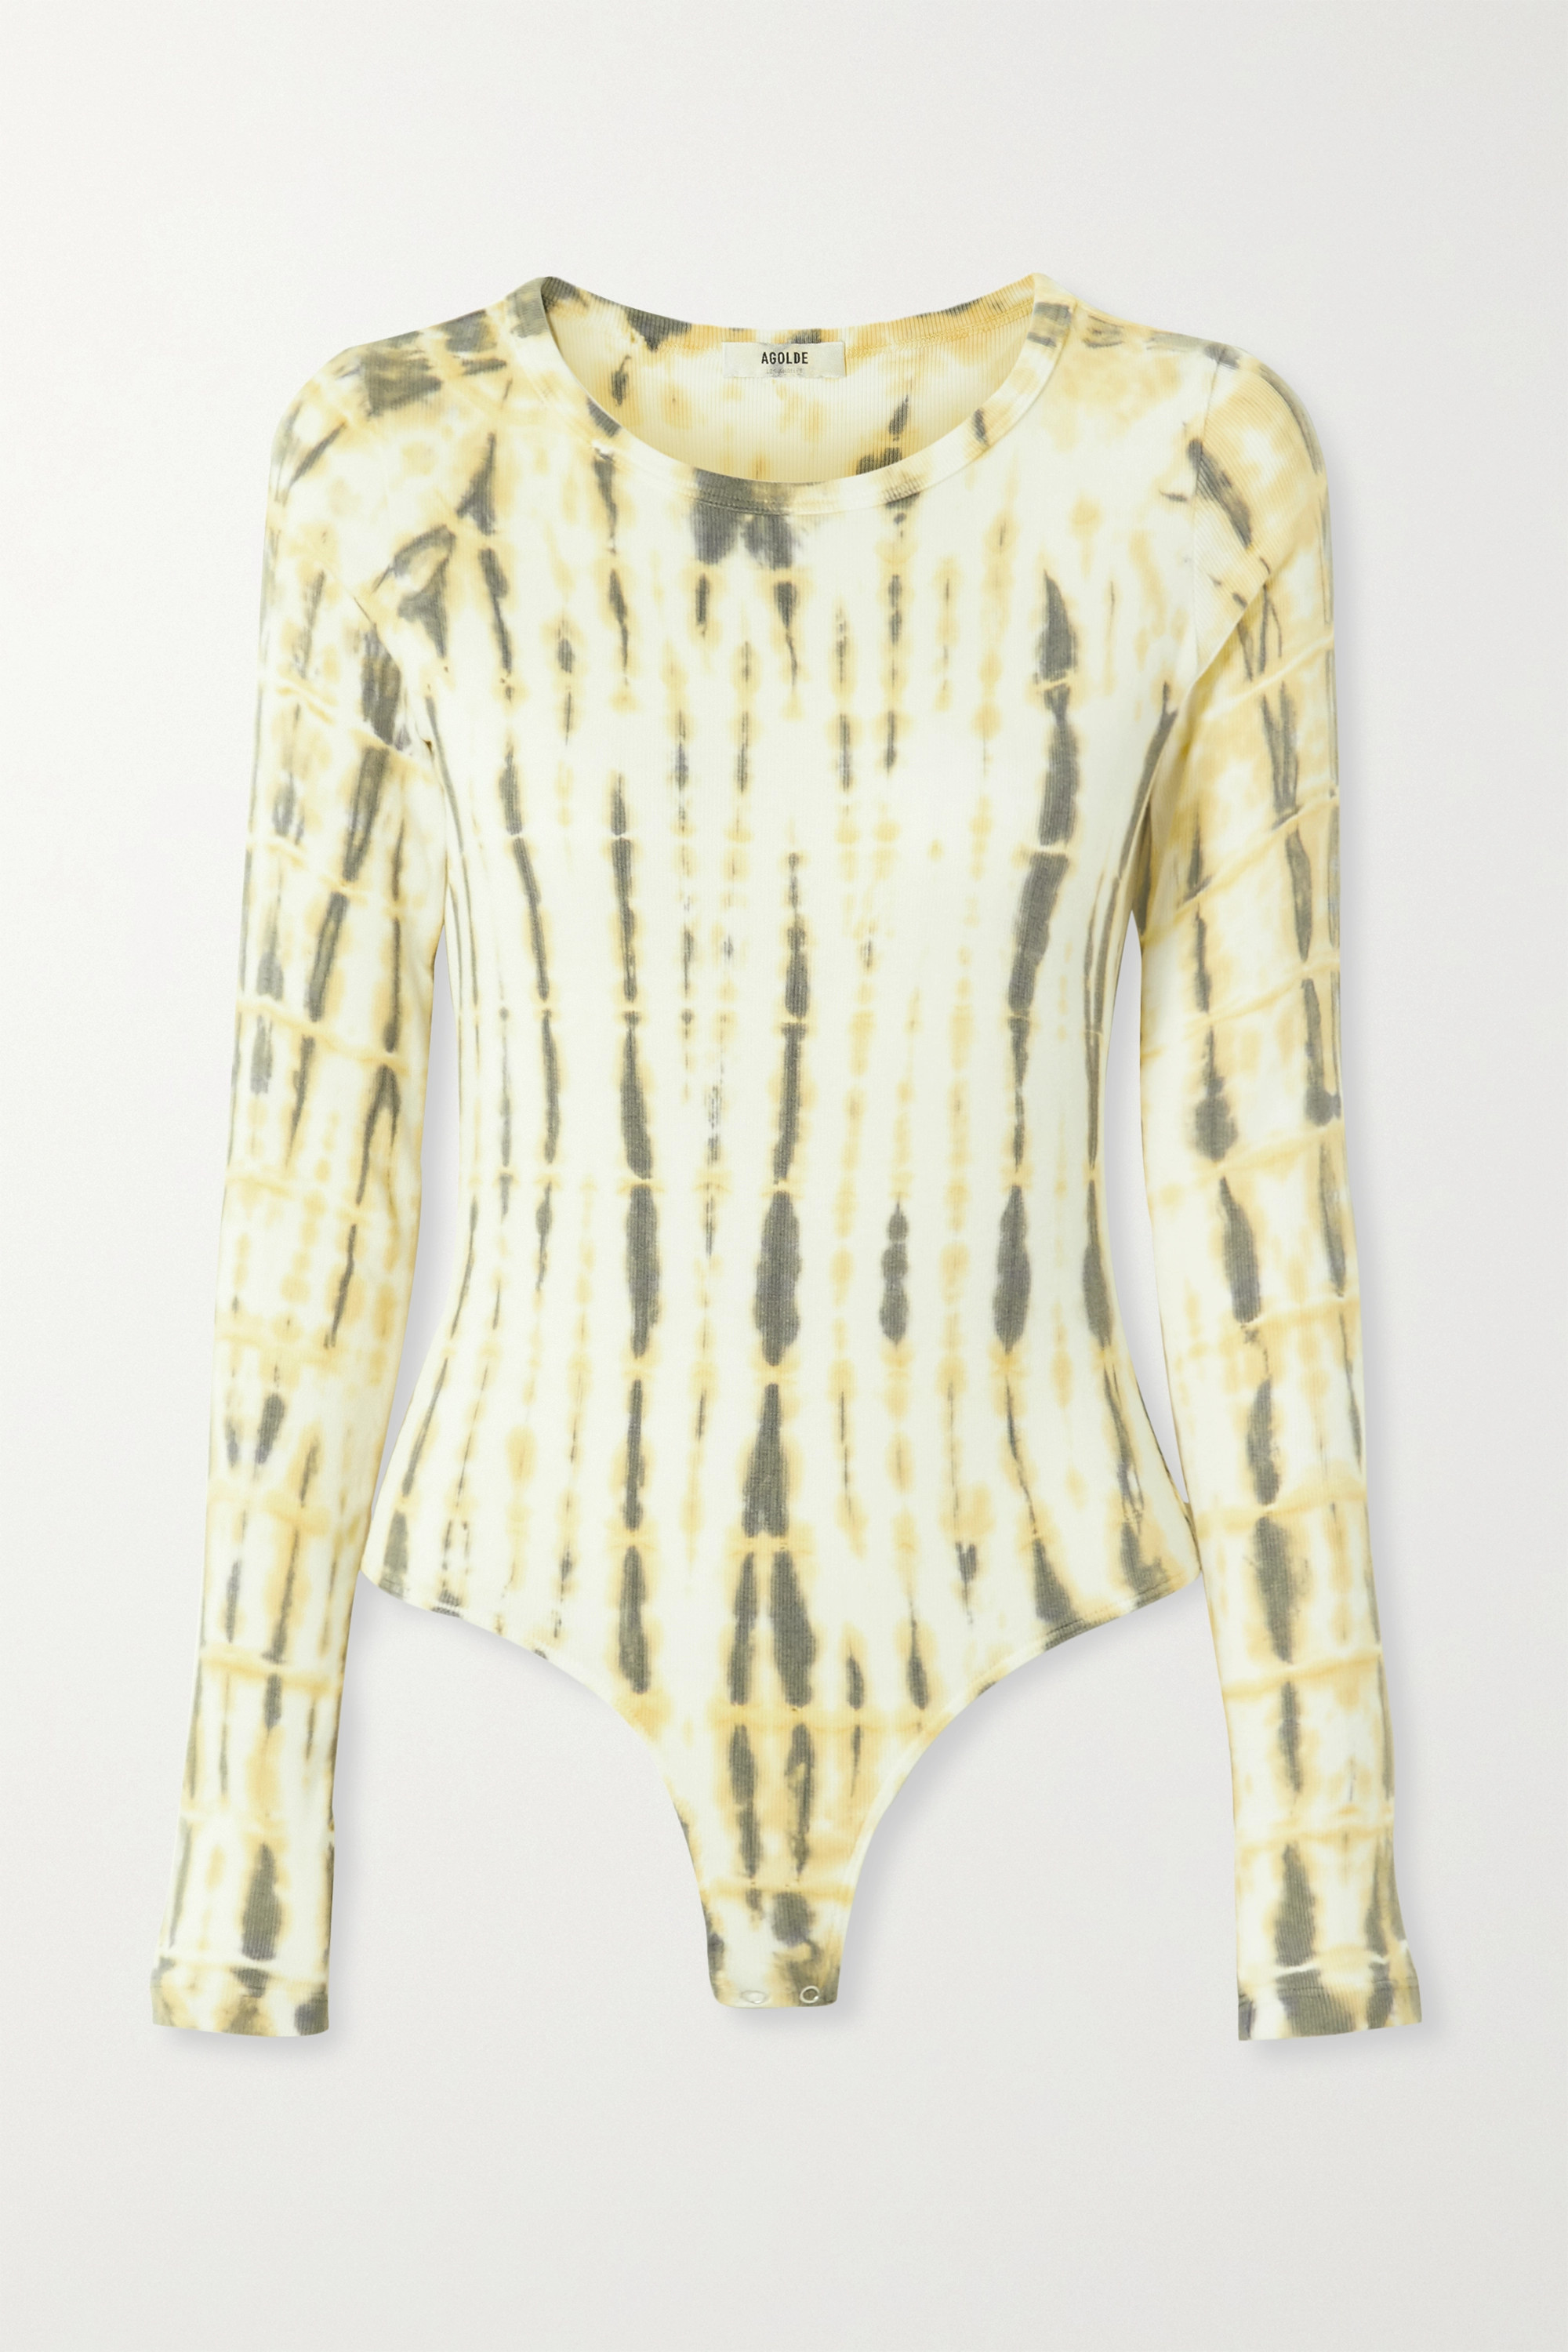 AGOLDE Leila ribbed tie-dyed stretch-jersey bodysuit